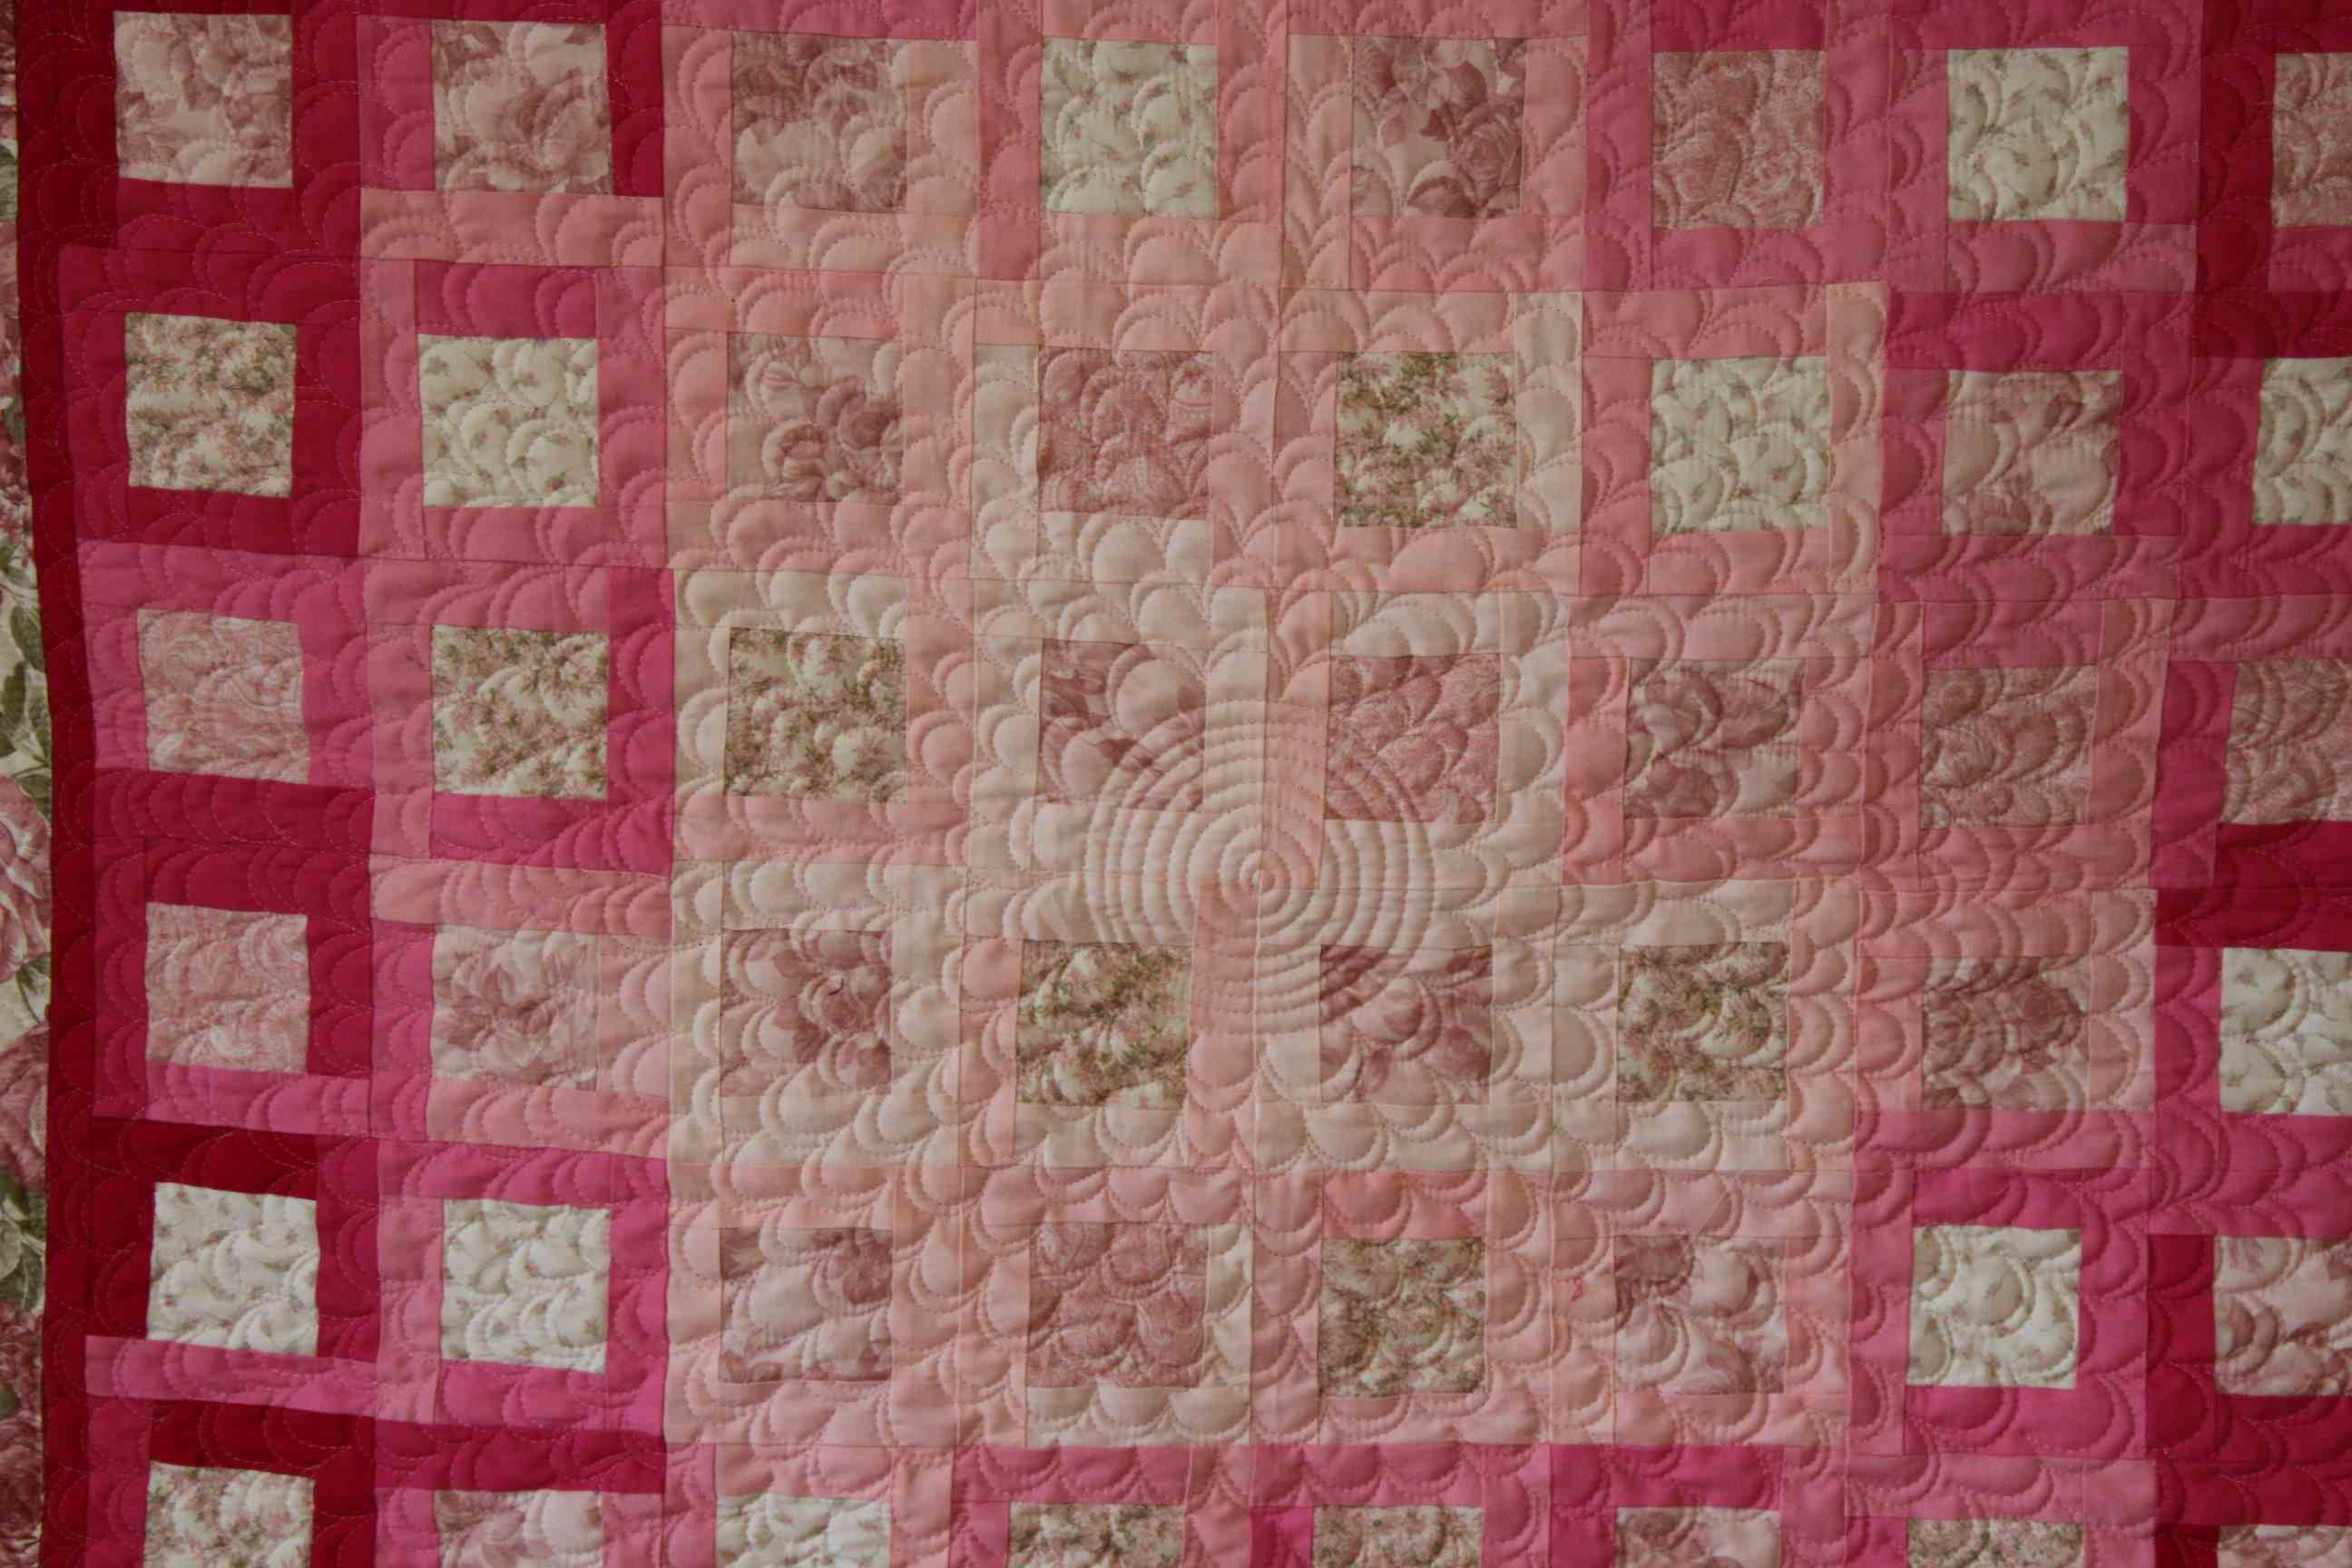 flower meander quilting example